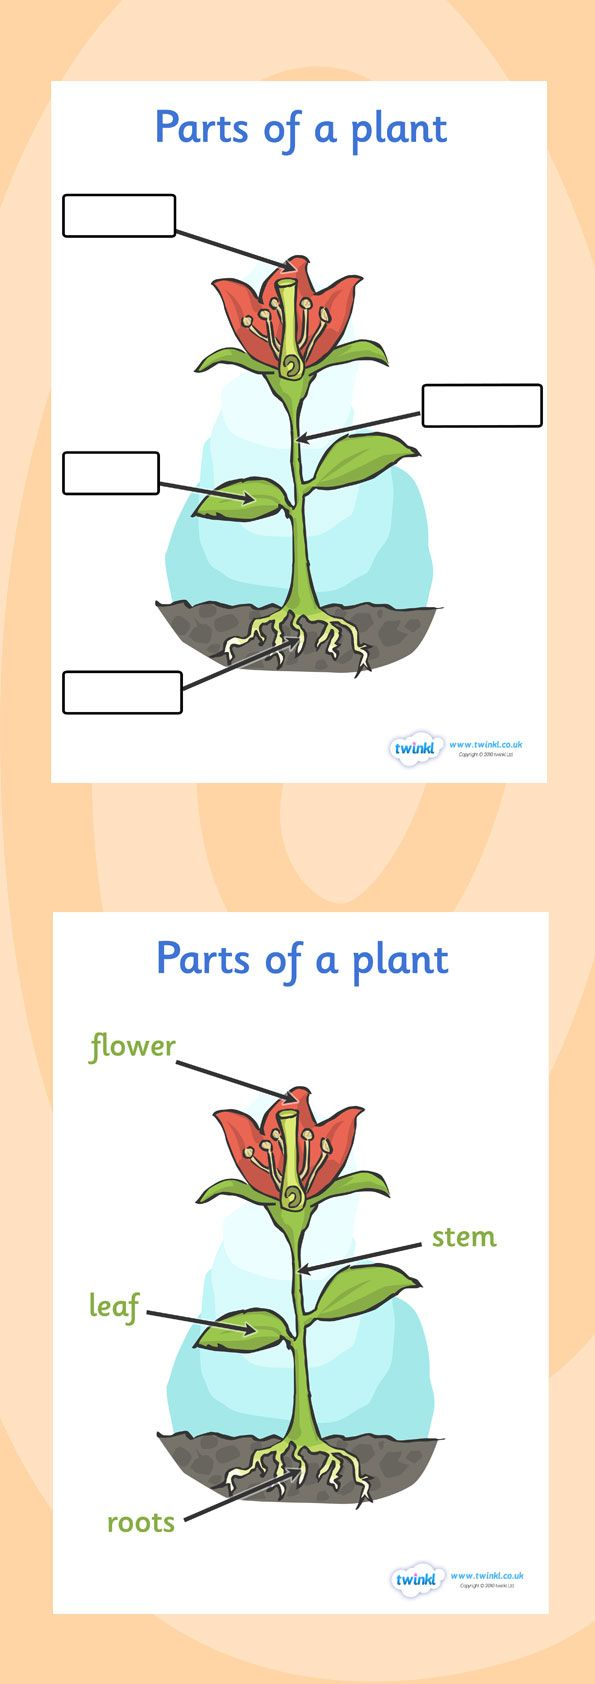 Twinkl Resources >> Parts of a Plant Foundation >> Classroom printables for Pre-School, Kindergarten, Elementary School and beyond! Plants, Growth, Labels, Worksheets